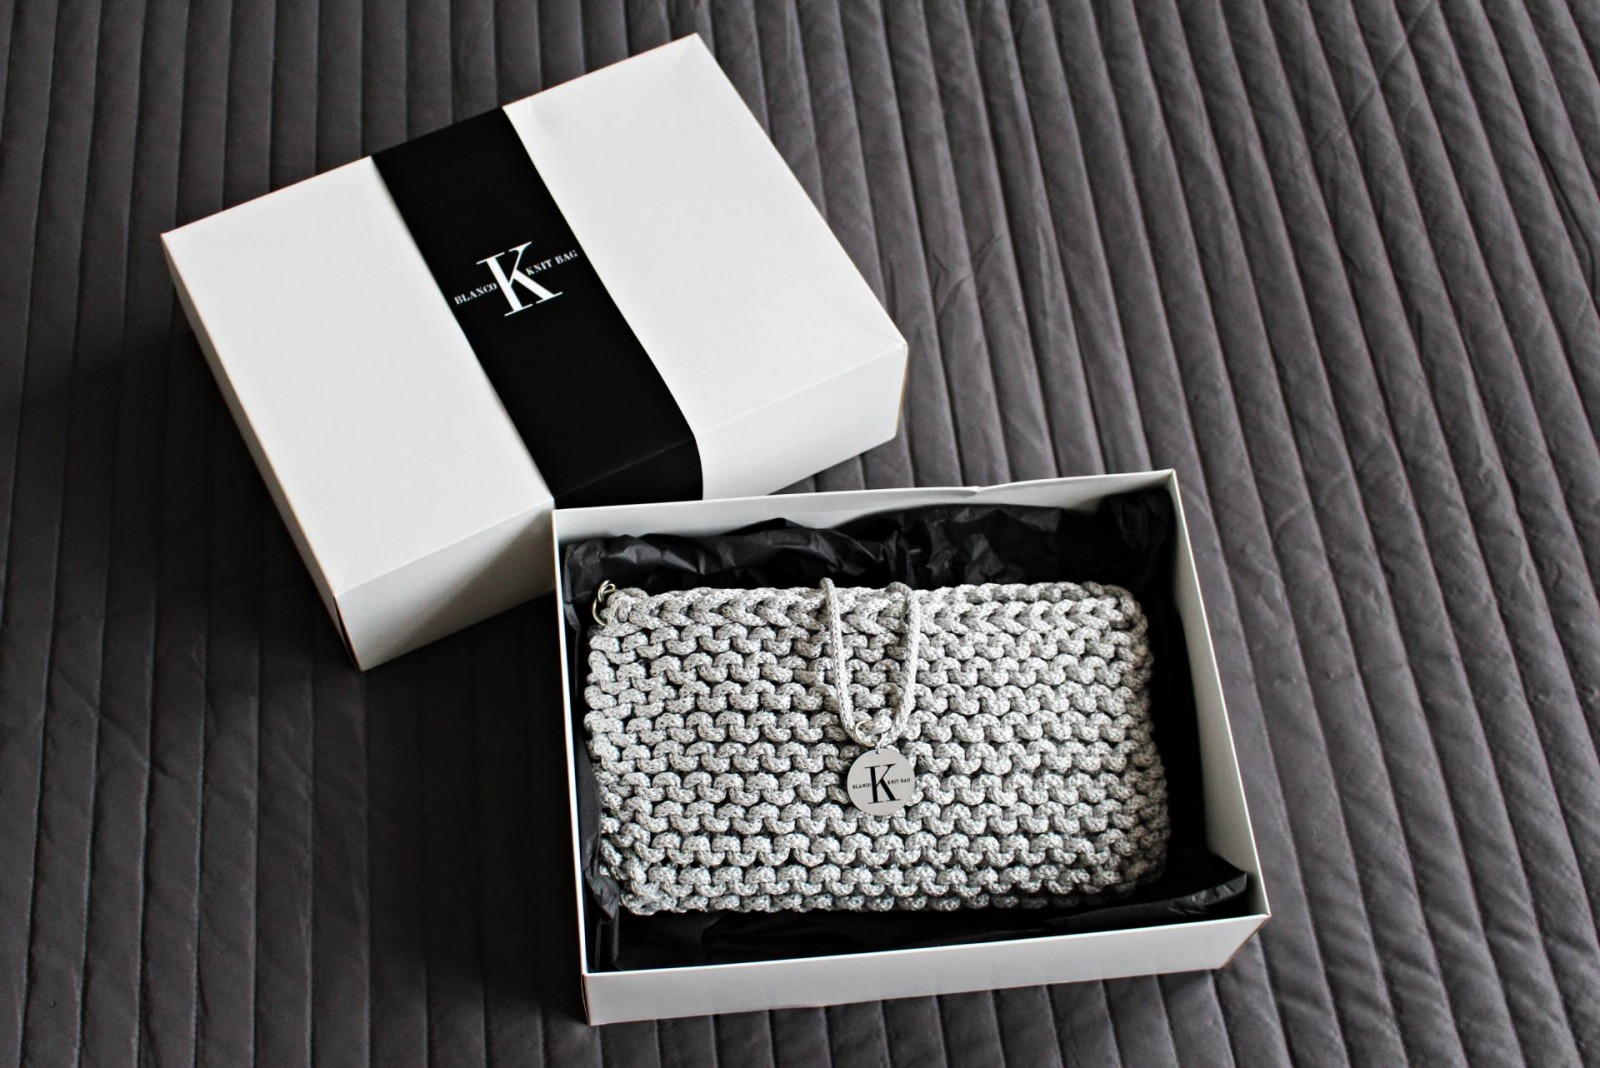 New in: Karikartel Blanco Knit Bag